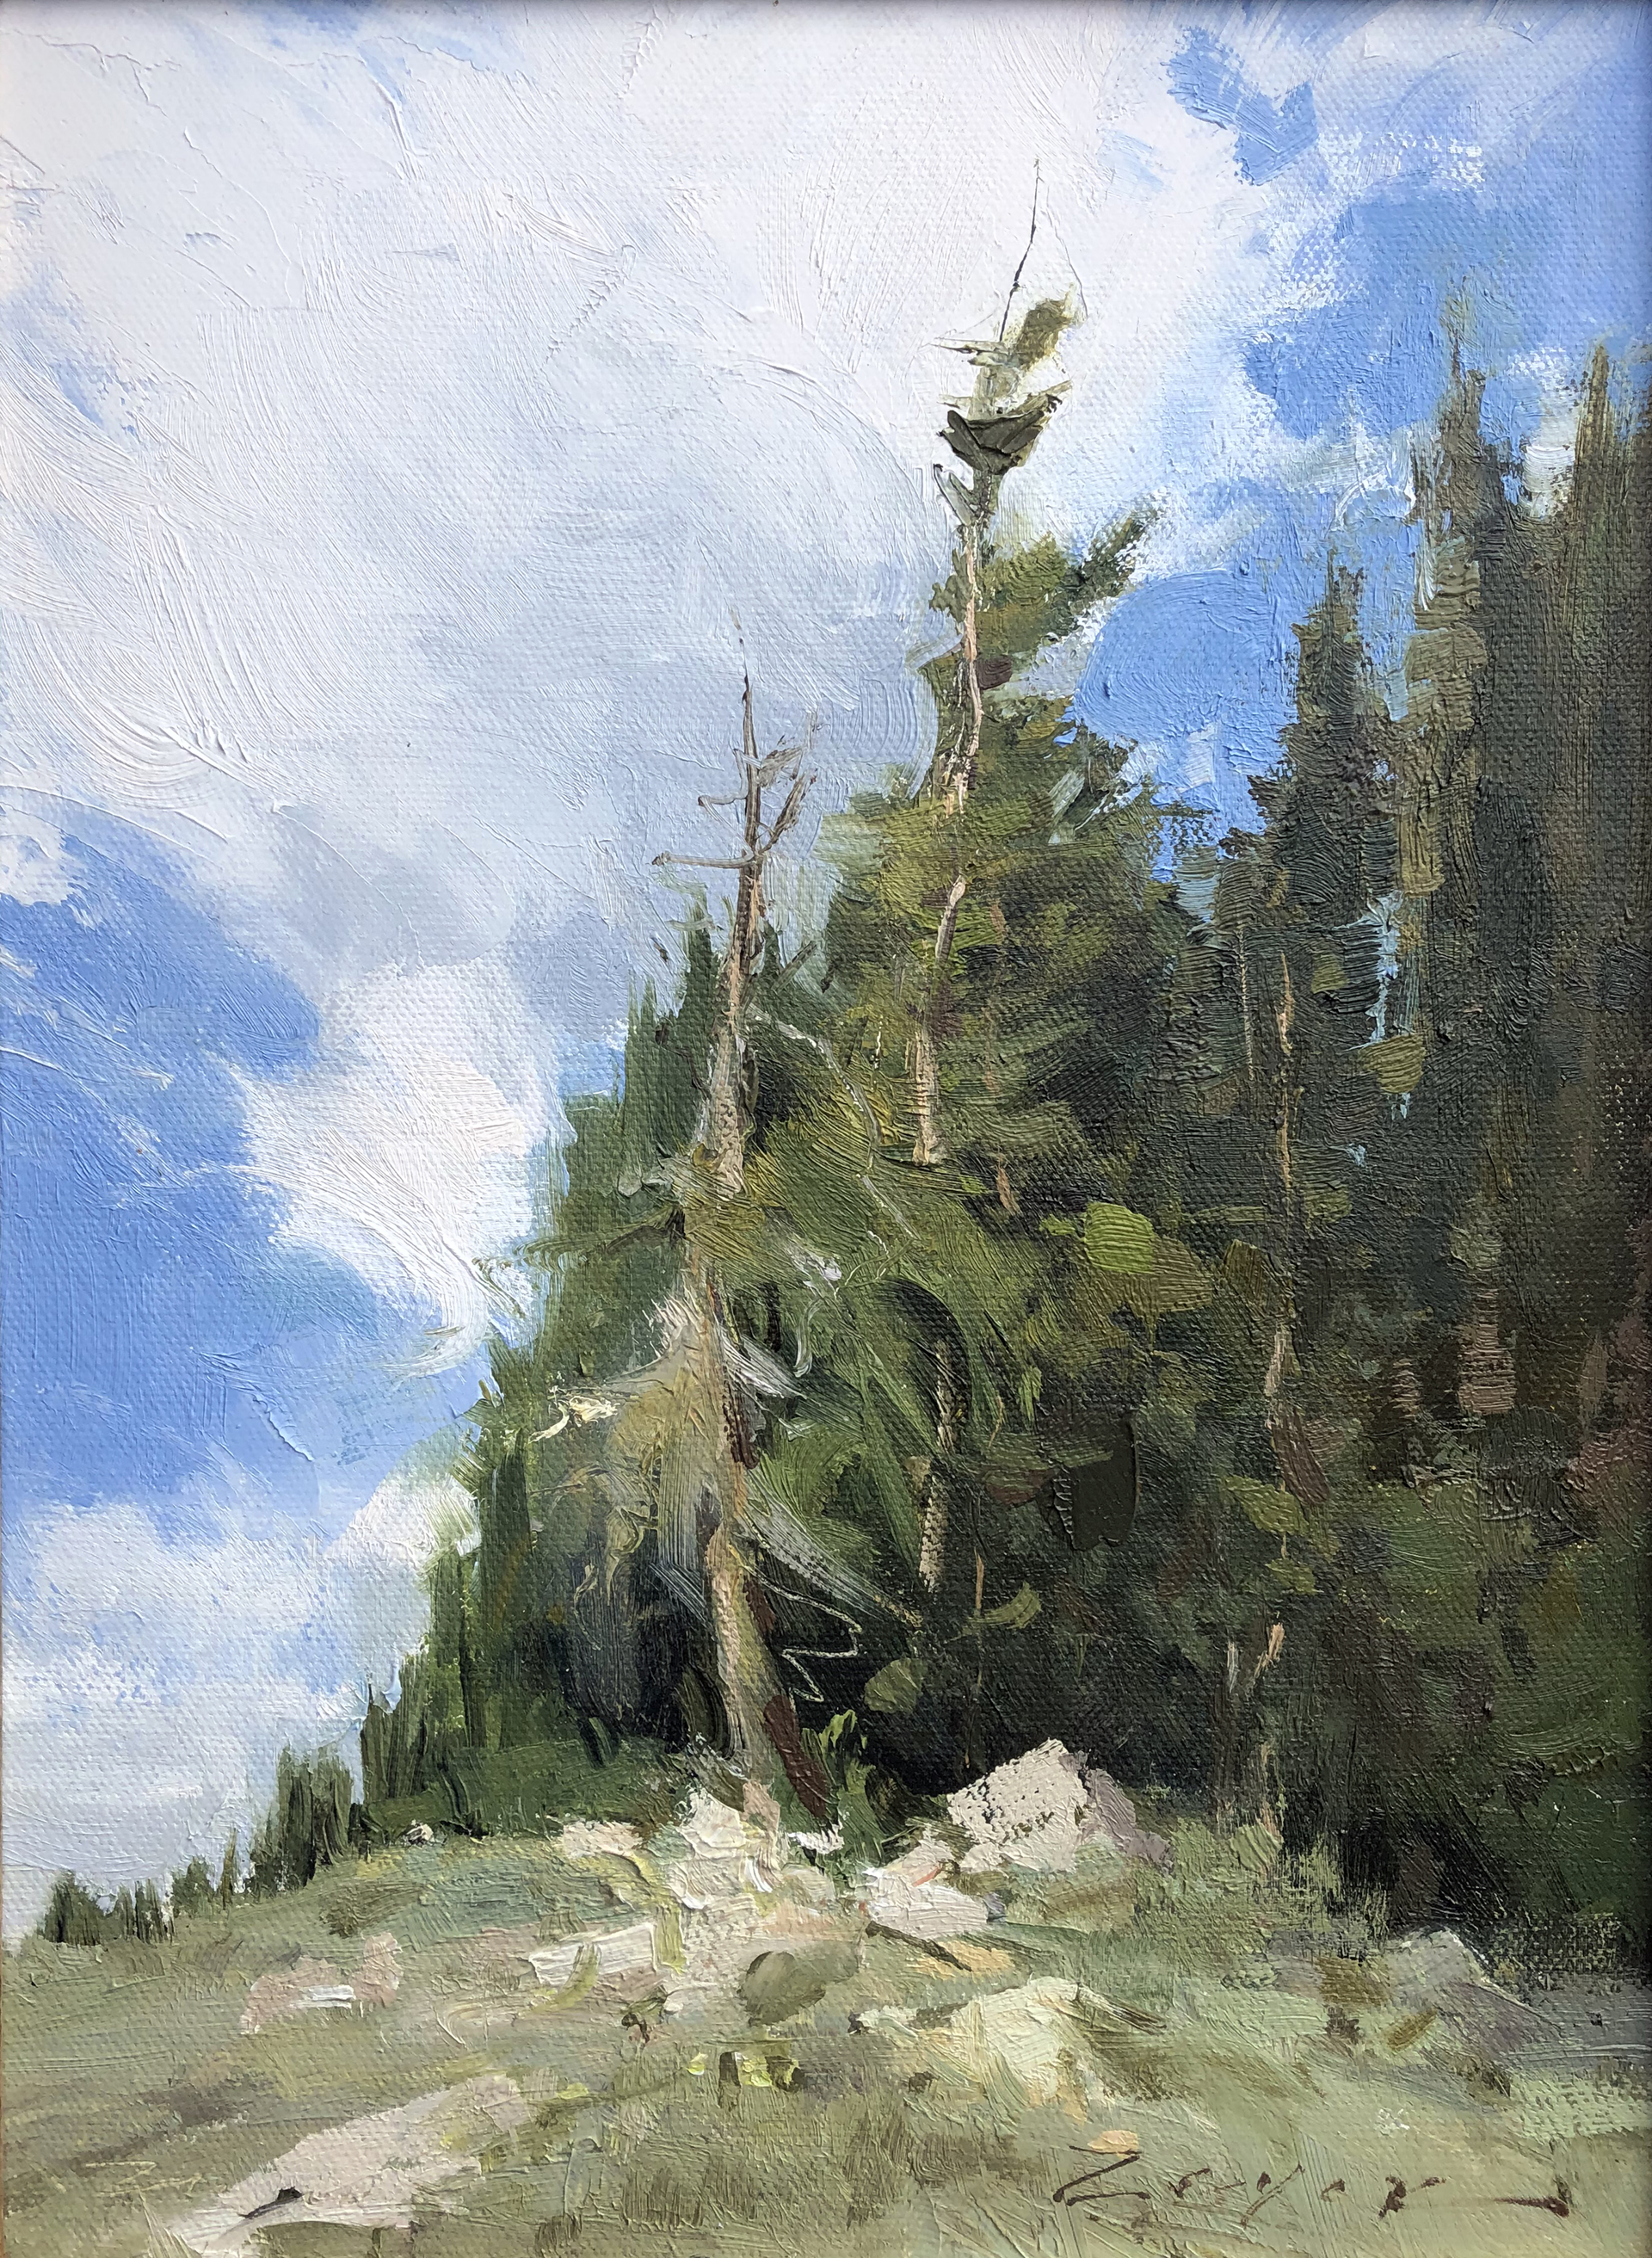 High Mountain Pines by Allie Zeyer